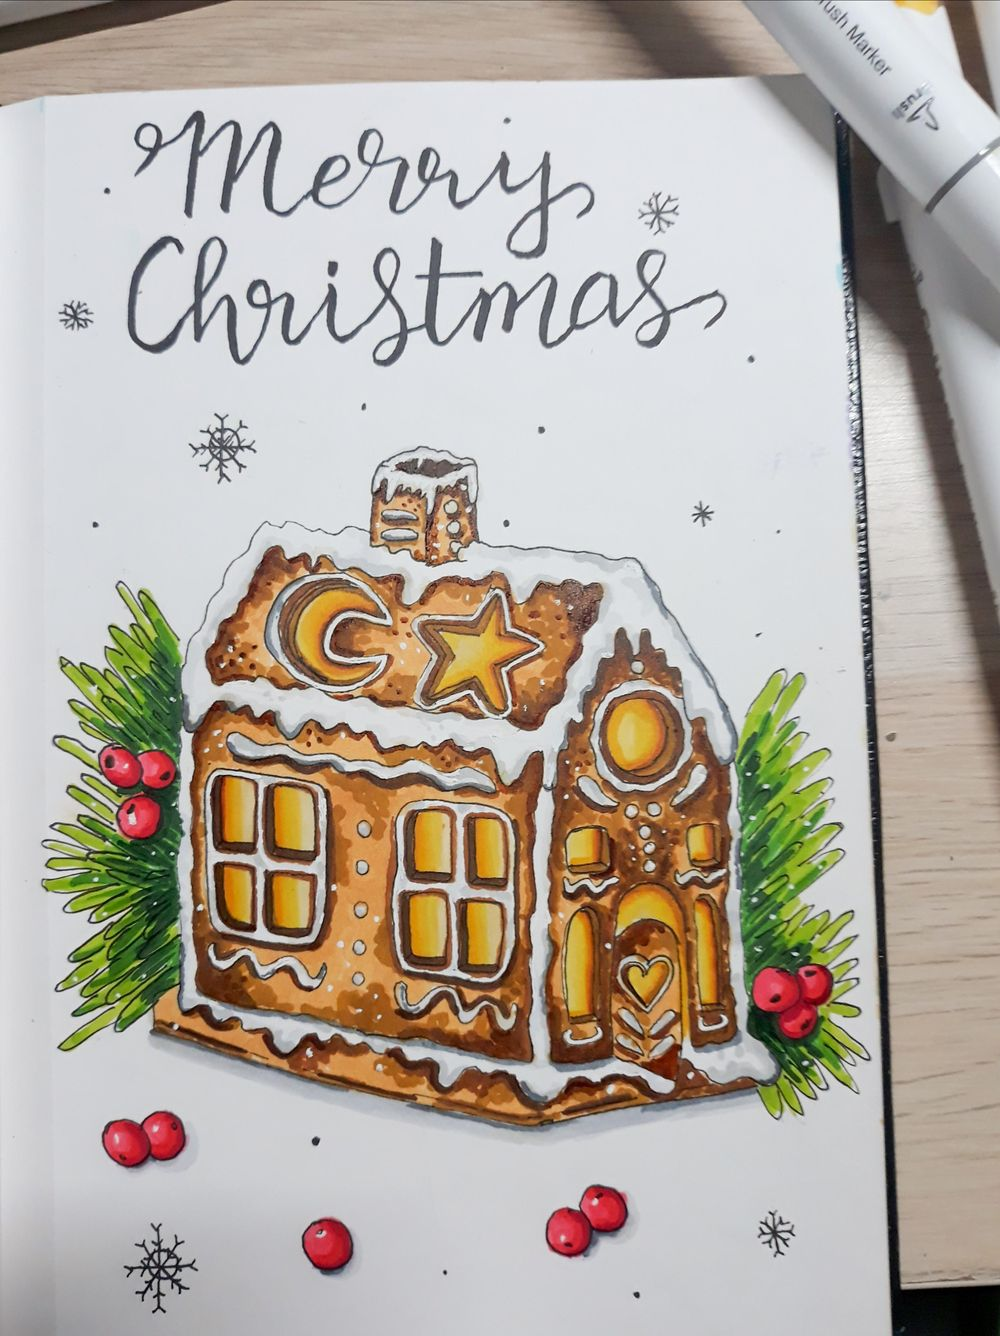 Ginger Bread House - image 1 - student project